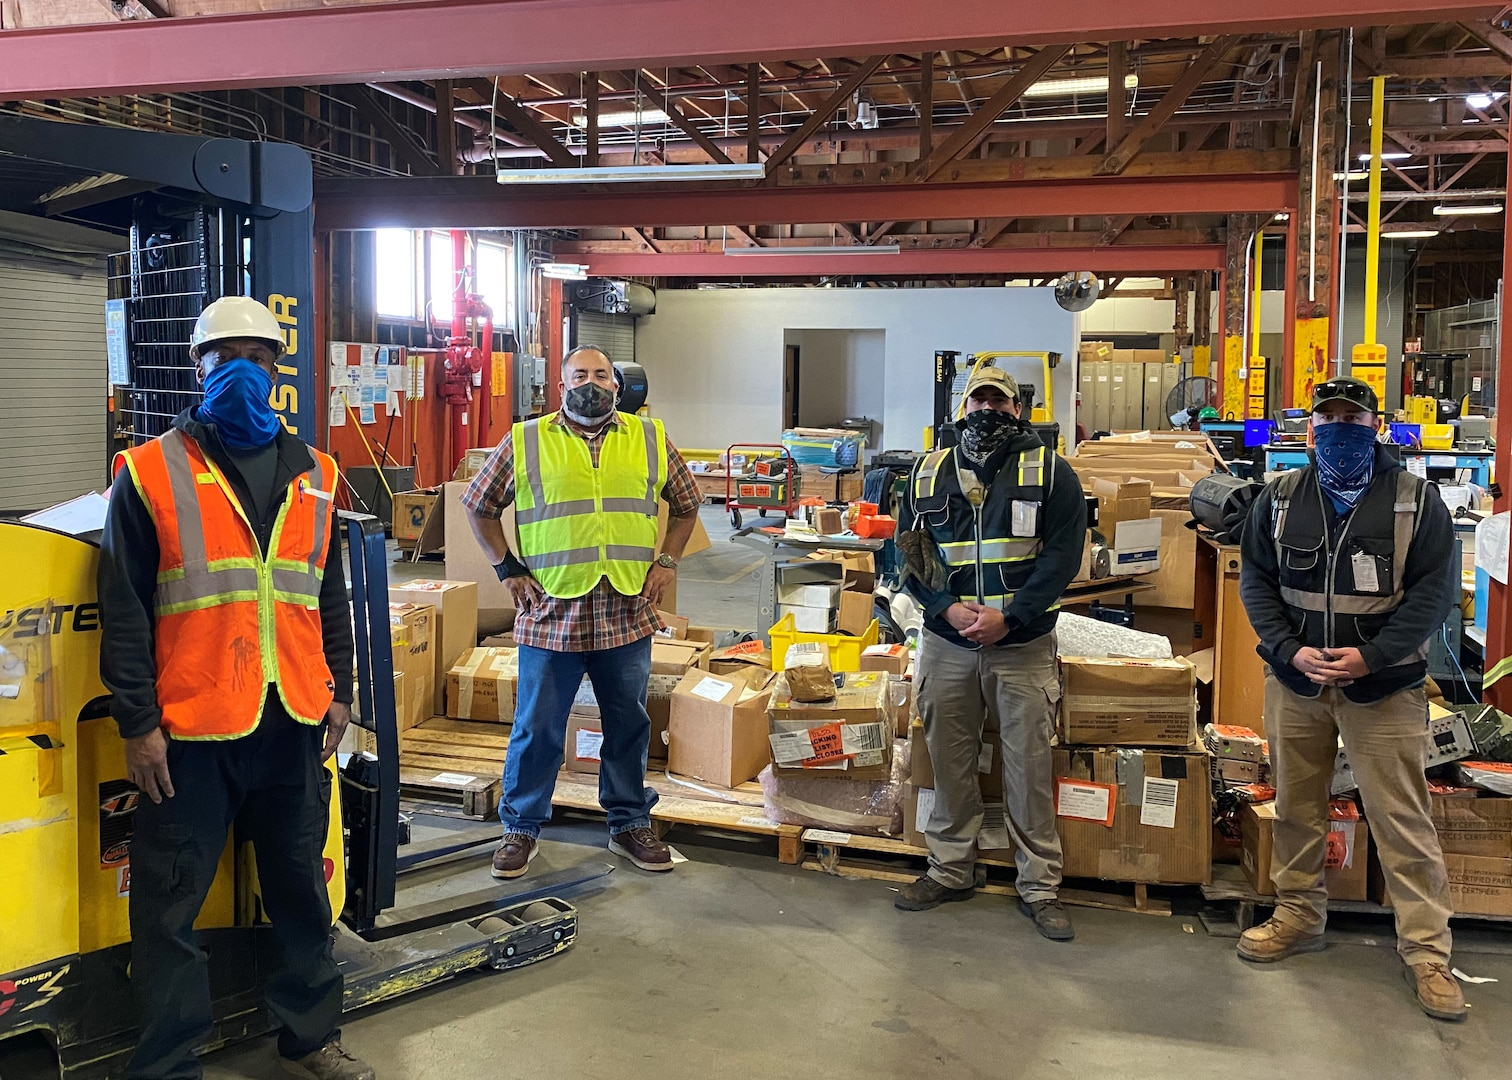 Four men wearing personal protective equipment for warehouse work and facemask stand socially distanced inside a warehouse with a forklift and boxes on pallets around them.